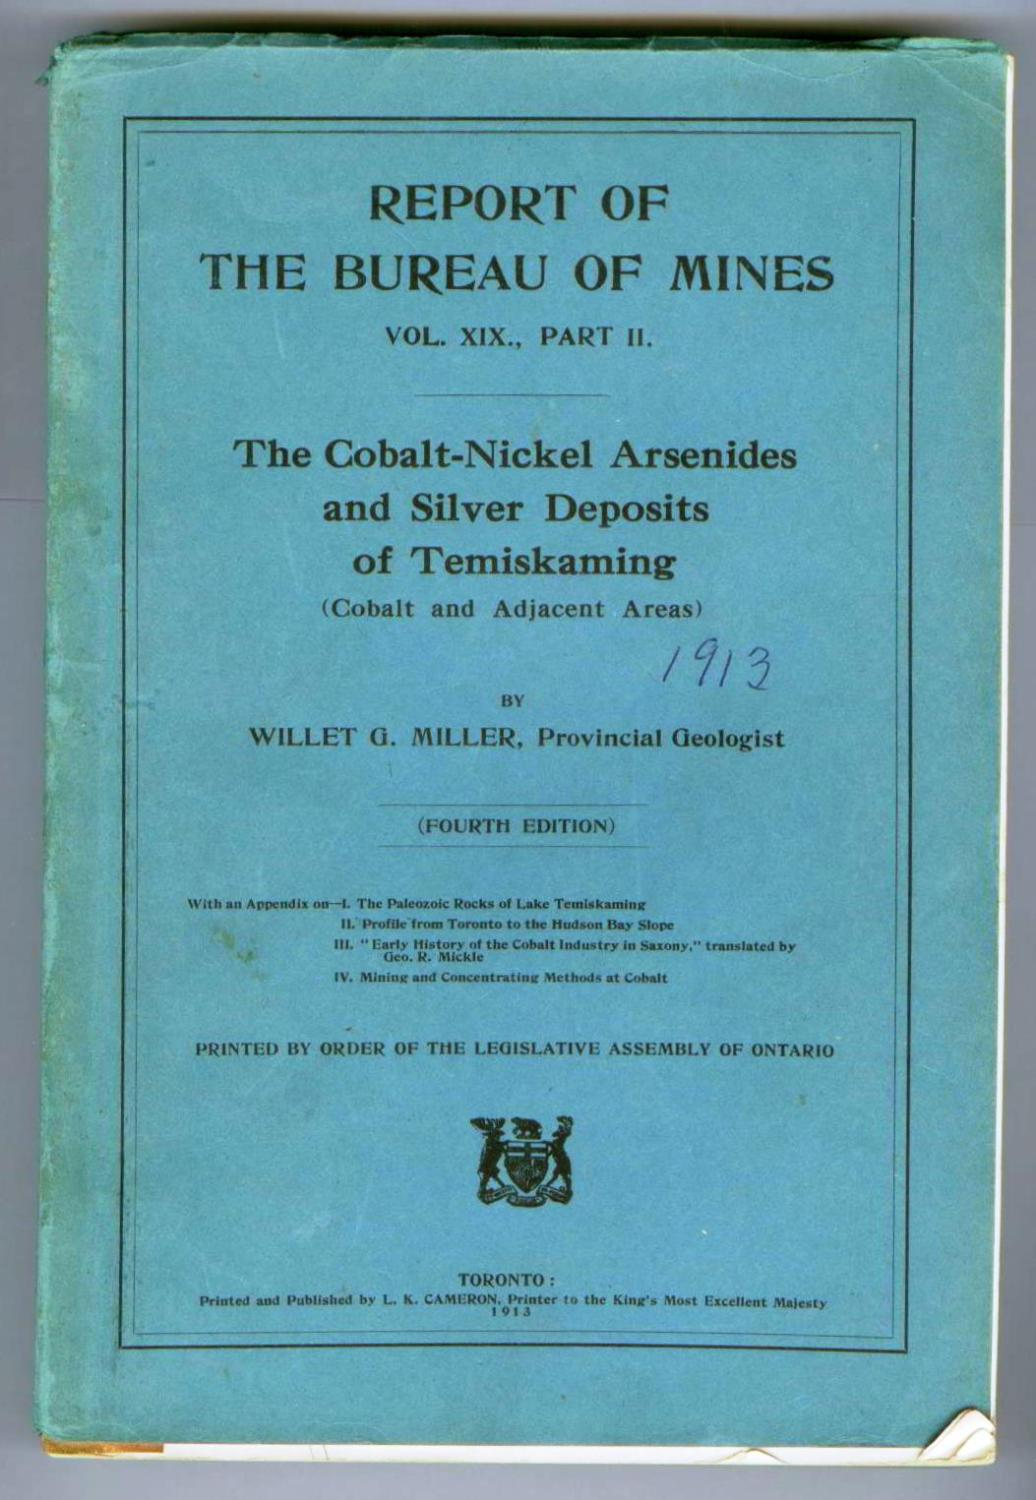 The Cobalt-Nickel Arsenides and Silver Deposits of Temiskaming (Cobalt and Adjacent Areas)